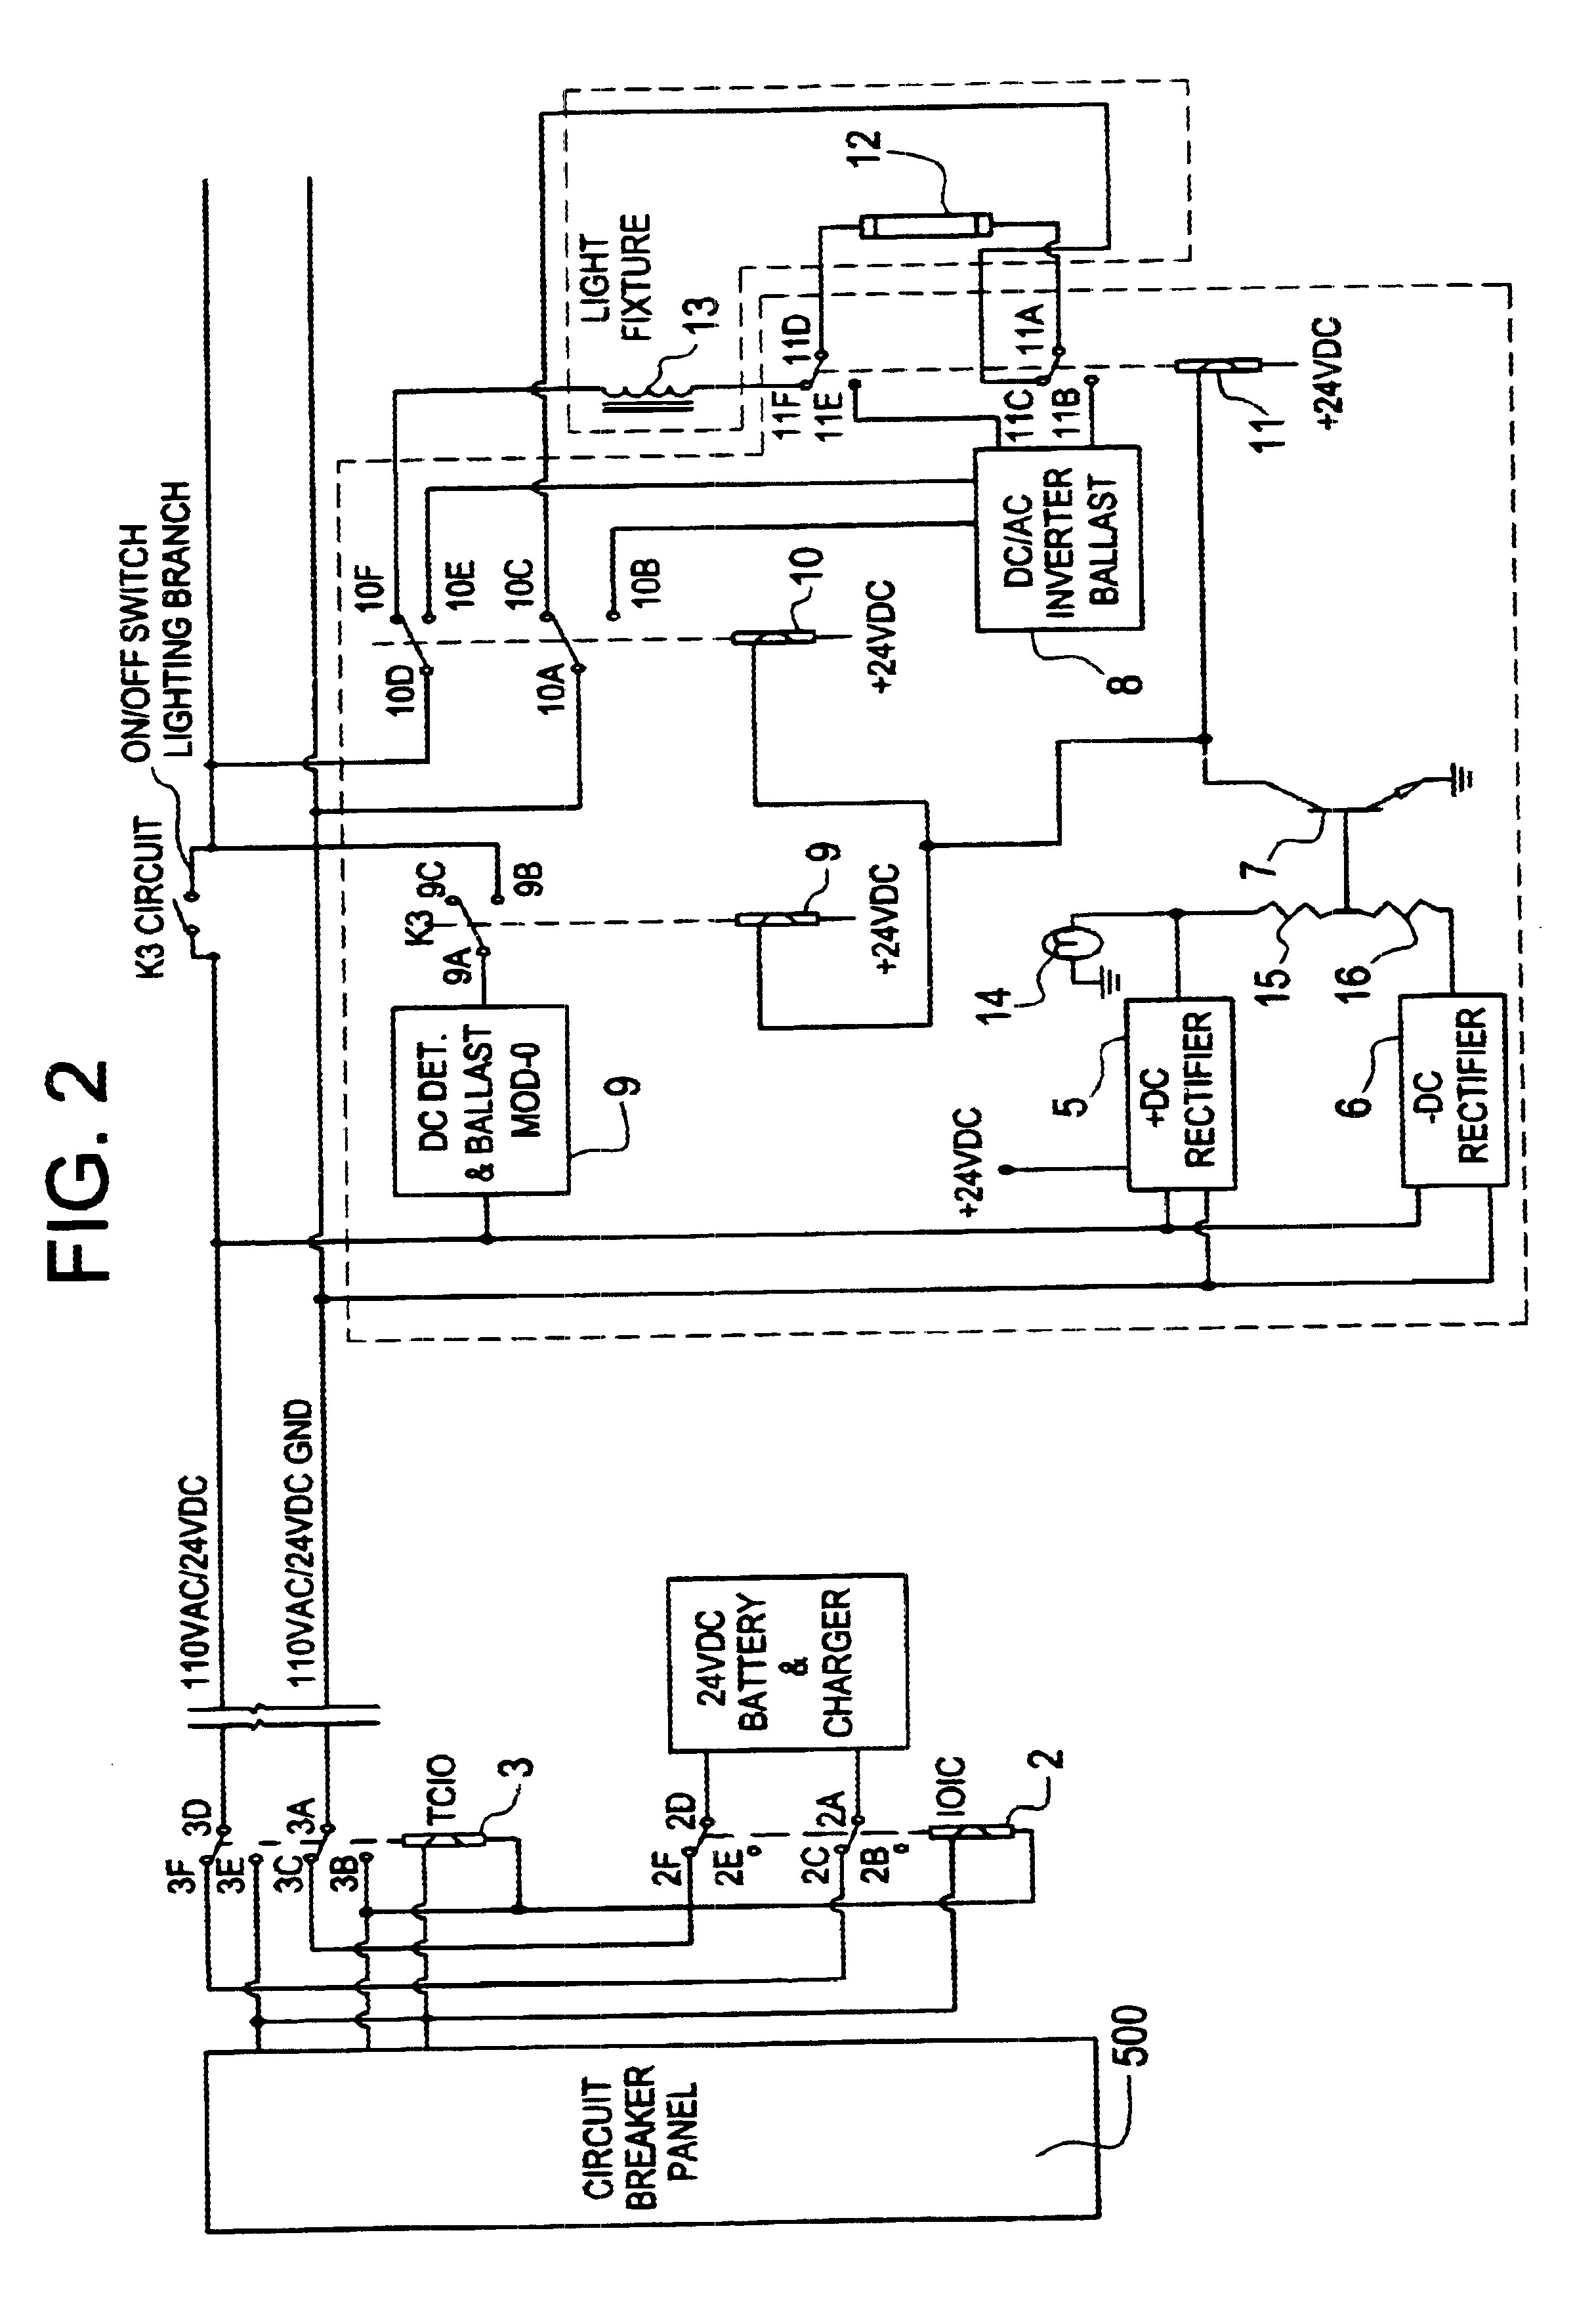 lithonia emergency ballast wiring diagram Collection-Wiring Diagram for Emergency Lighting Refrence Emergency Lighting Wiring Diagram 2-t